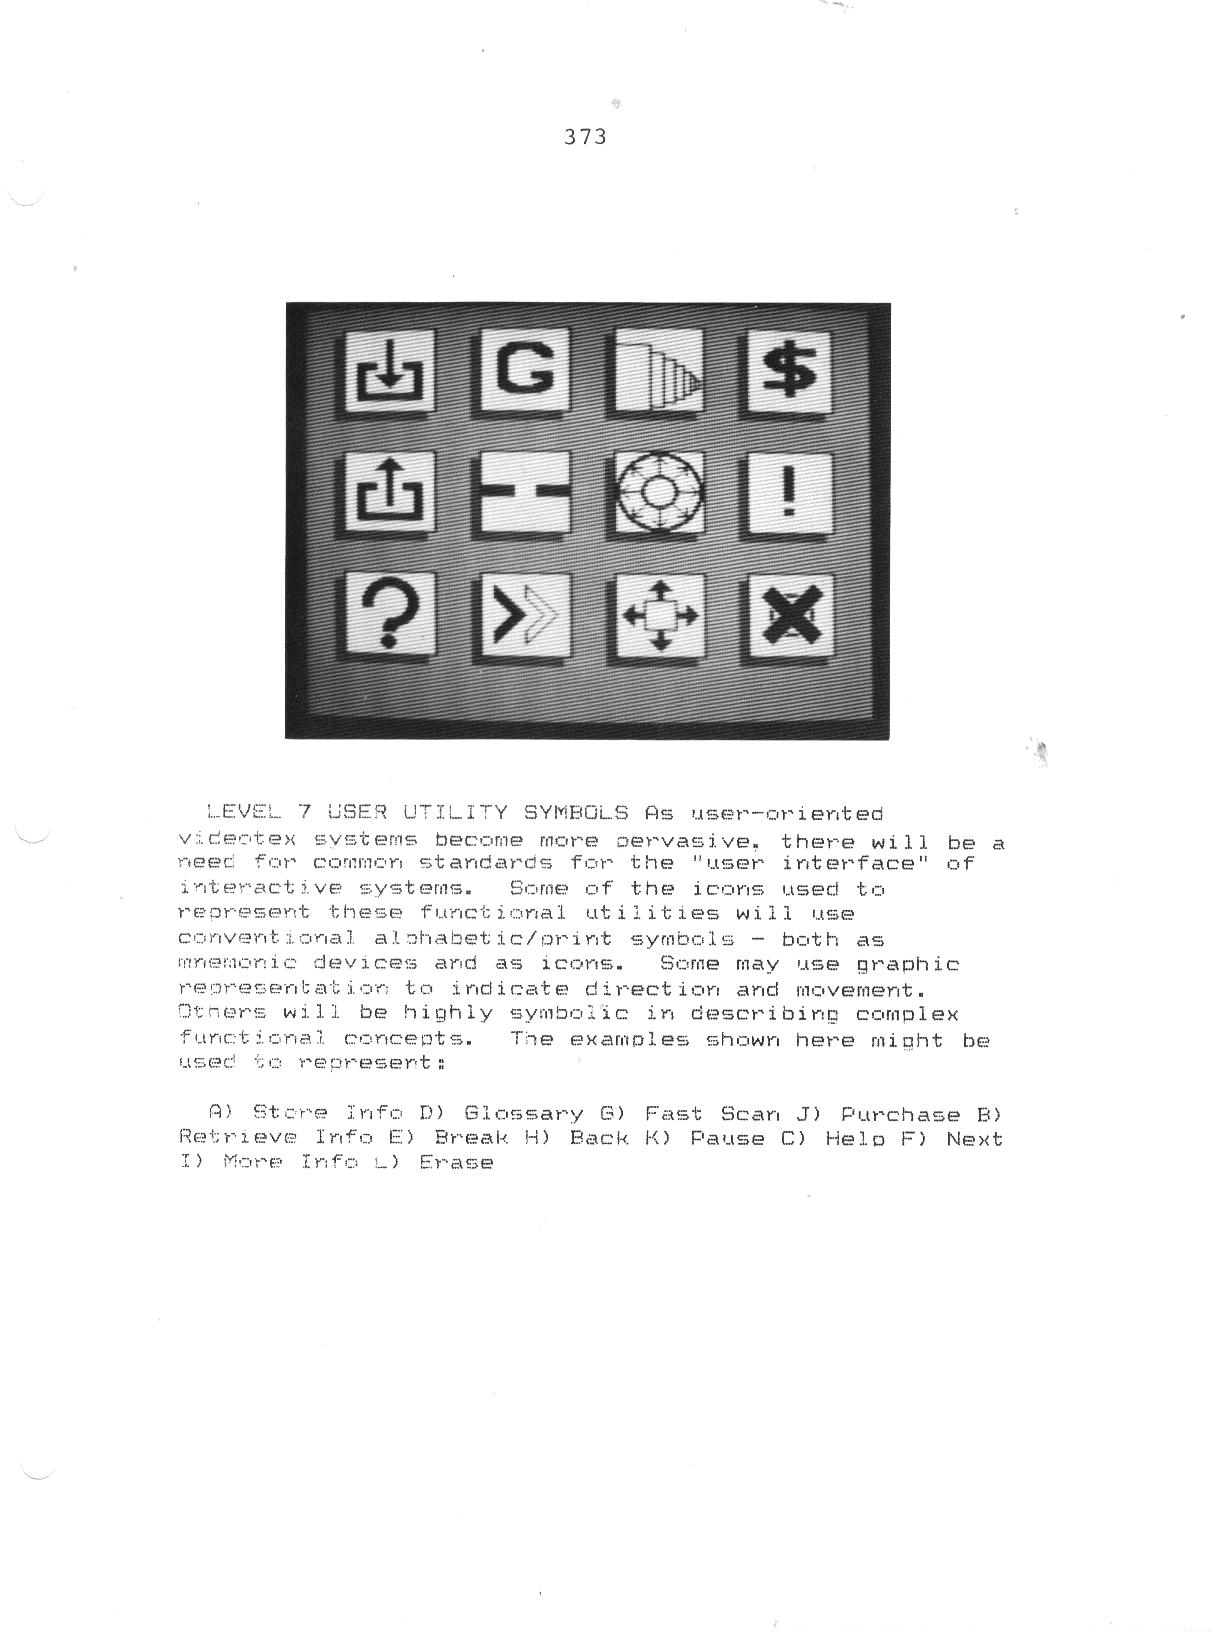 Graphics:  Early Digital Interaction Symbols